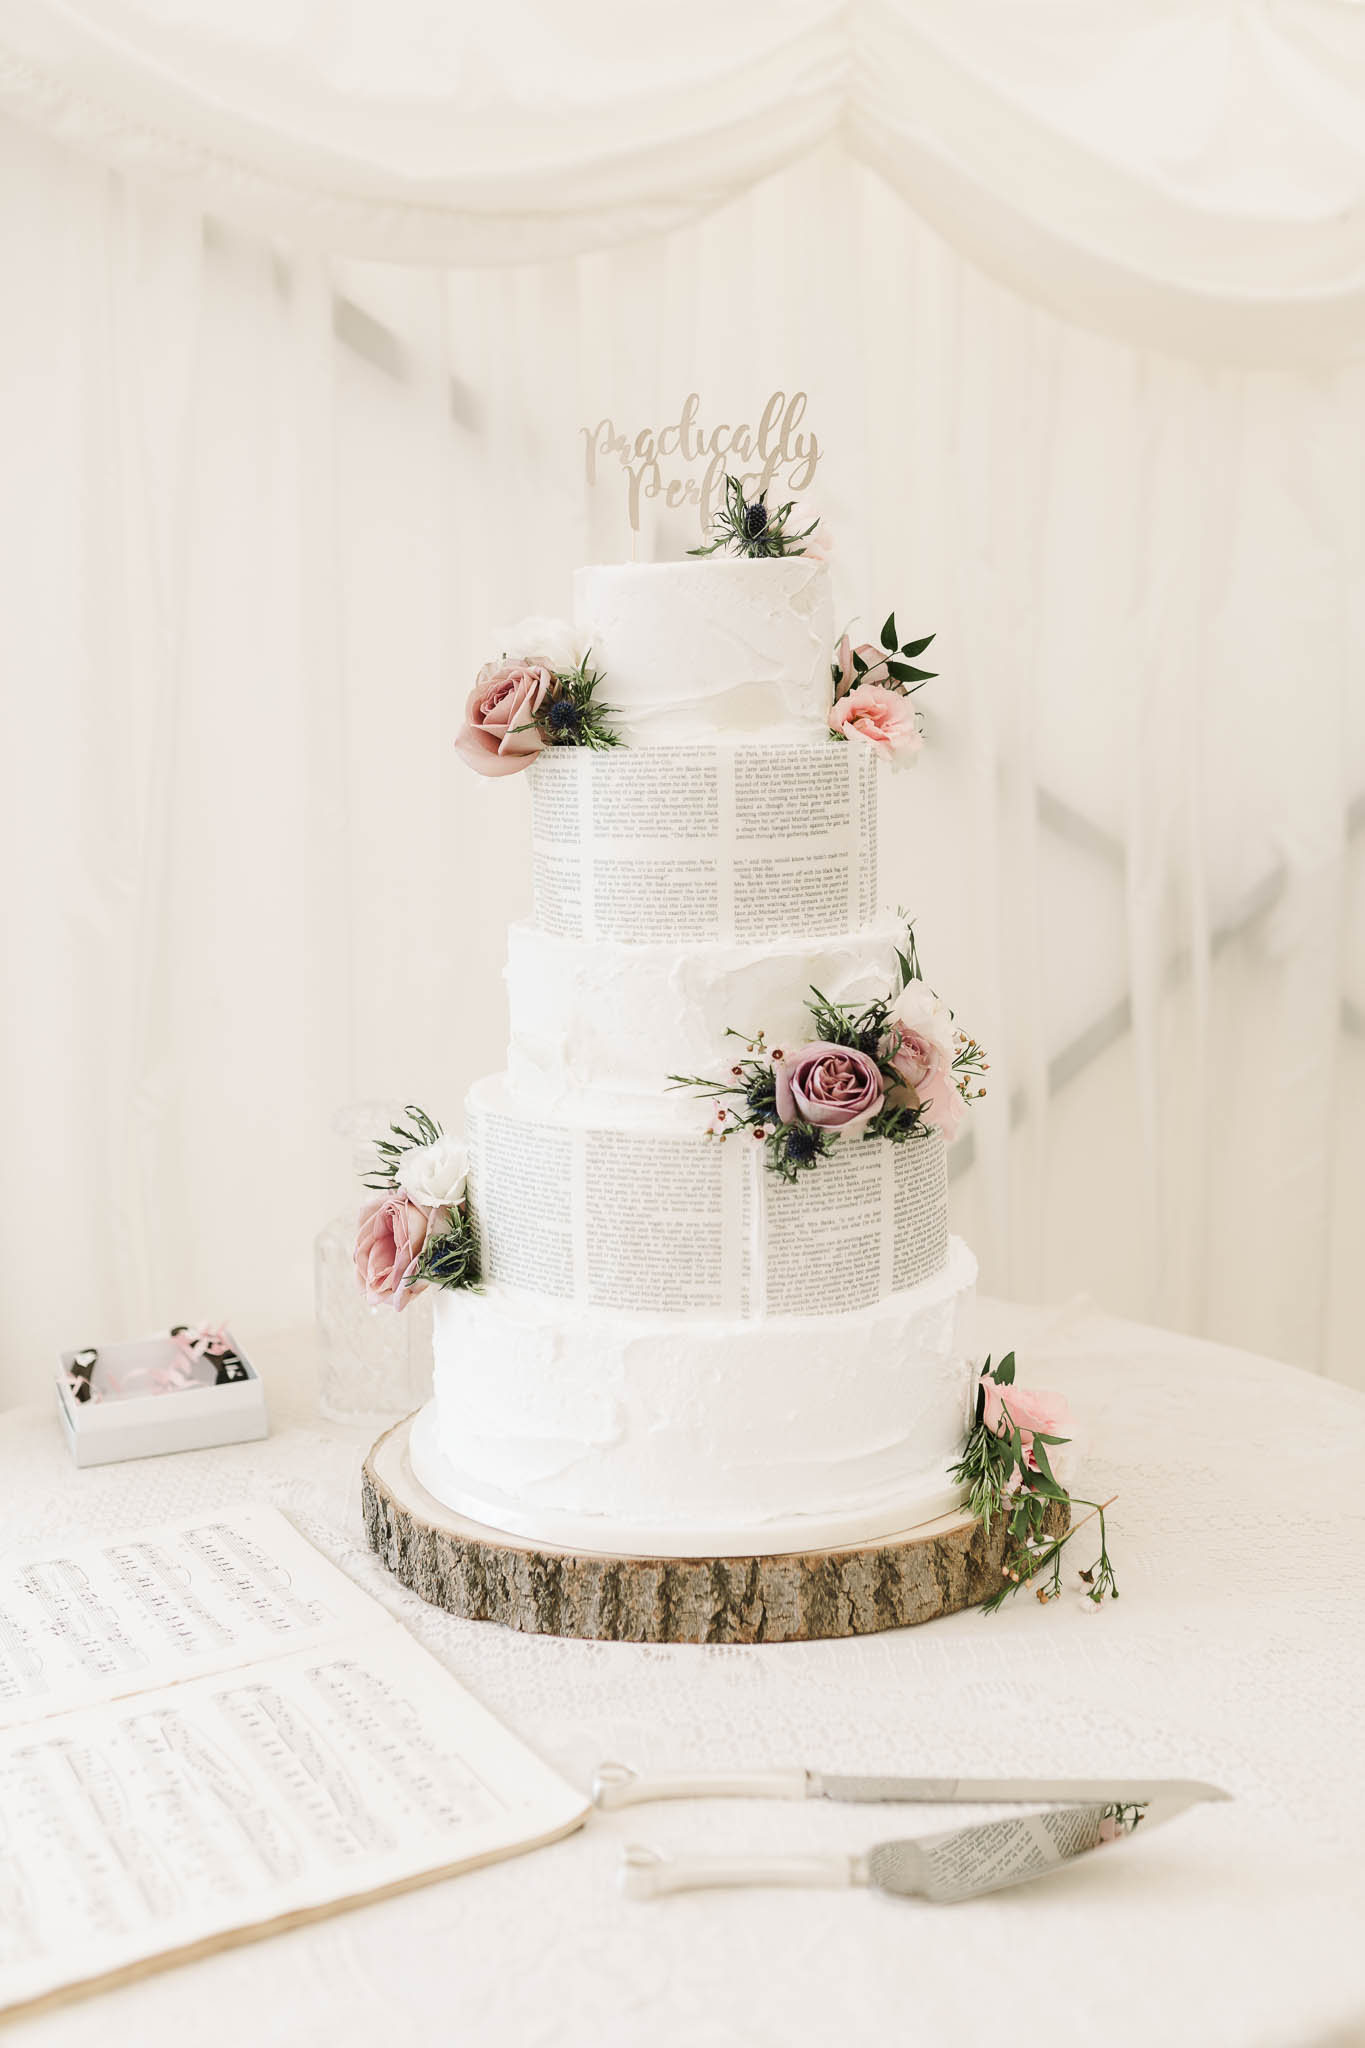 white wedding cake with book pages